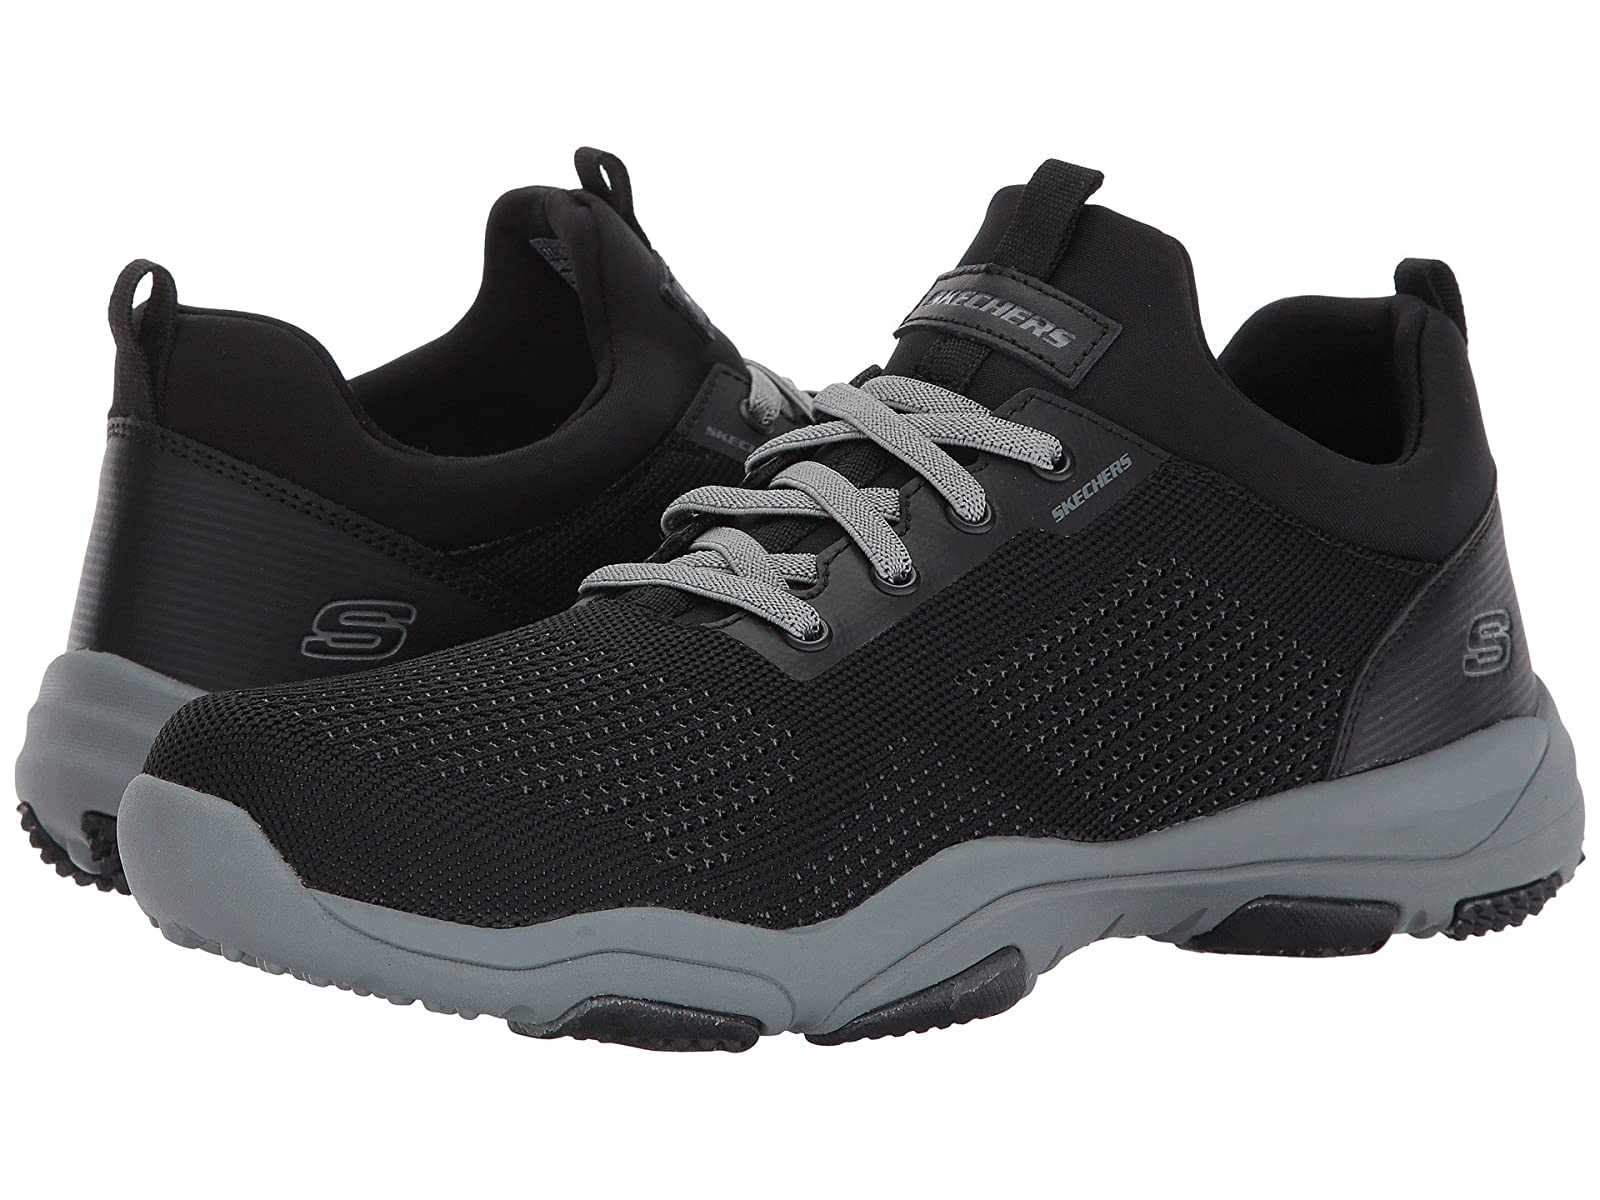 SKECHERS Classic Fit Larson - NorvenCheap and distinctive eye-catching shoes